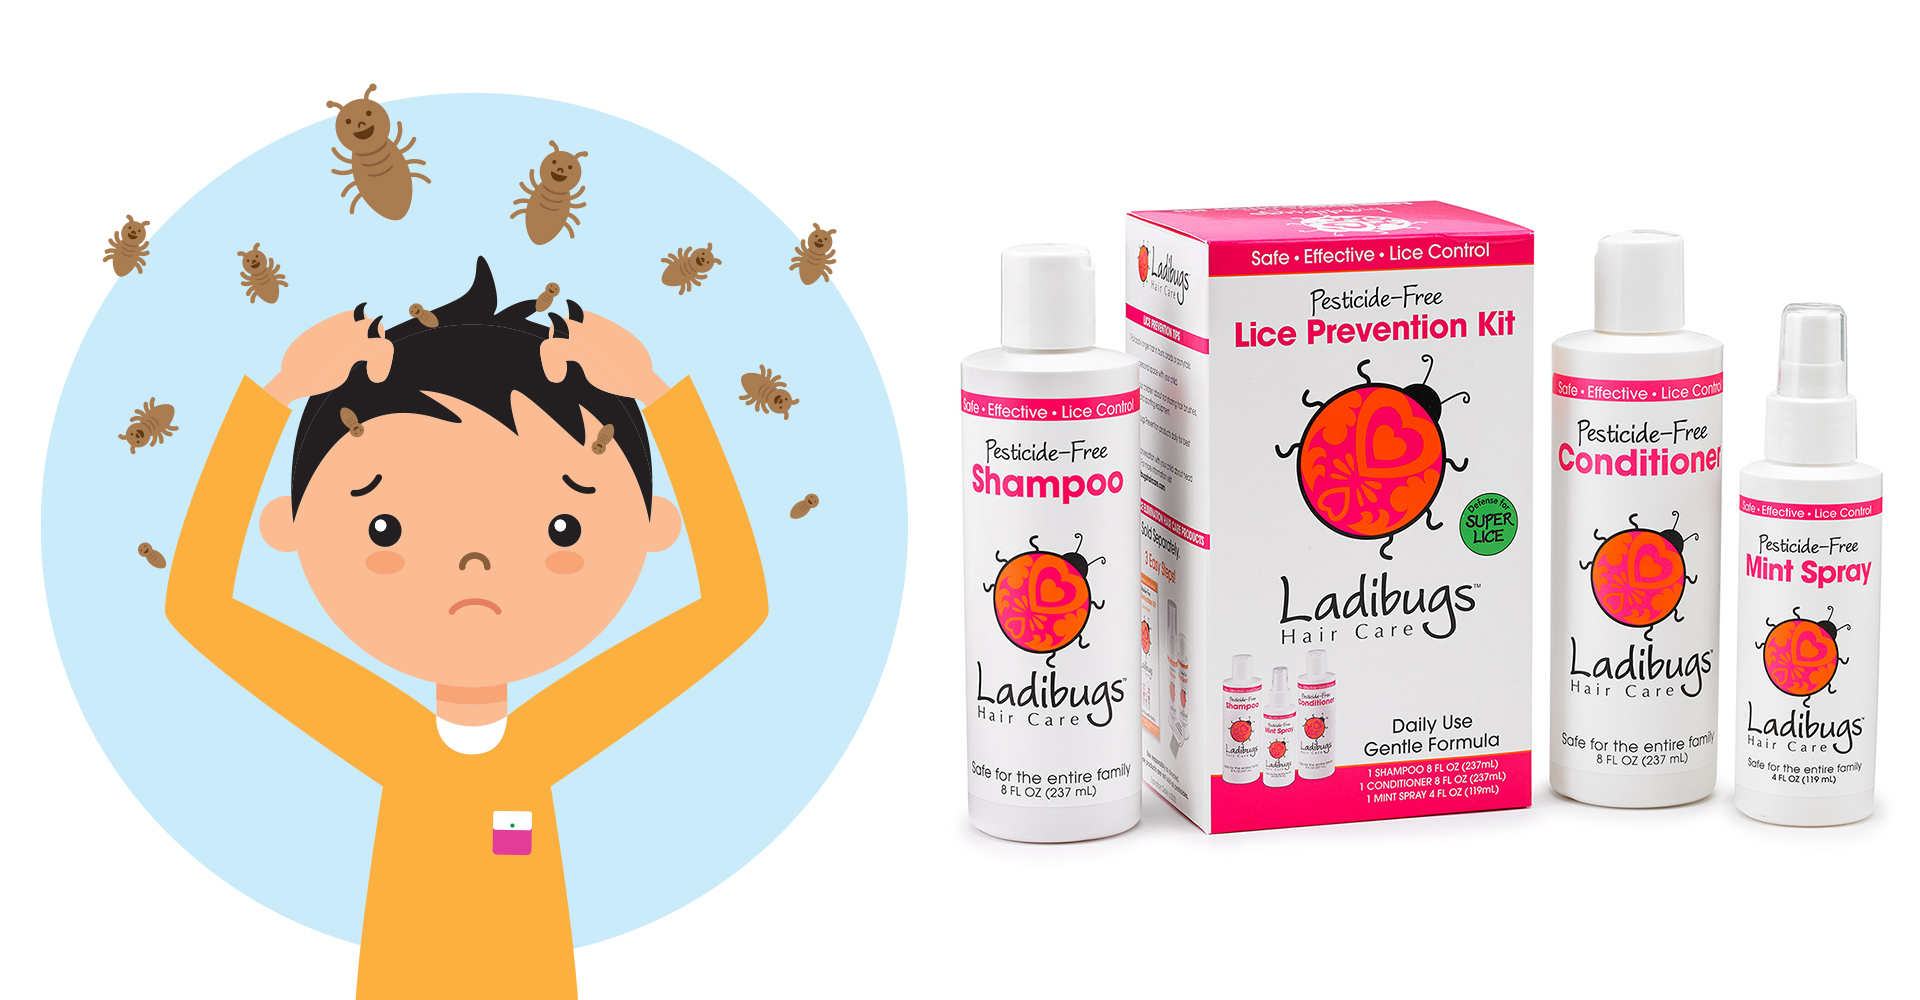 Ladibugs Lice Prevention Products